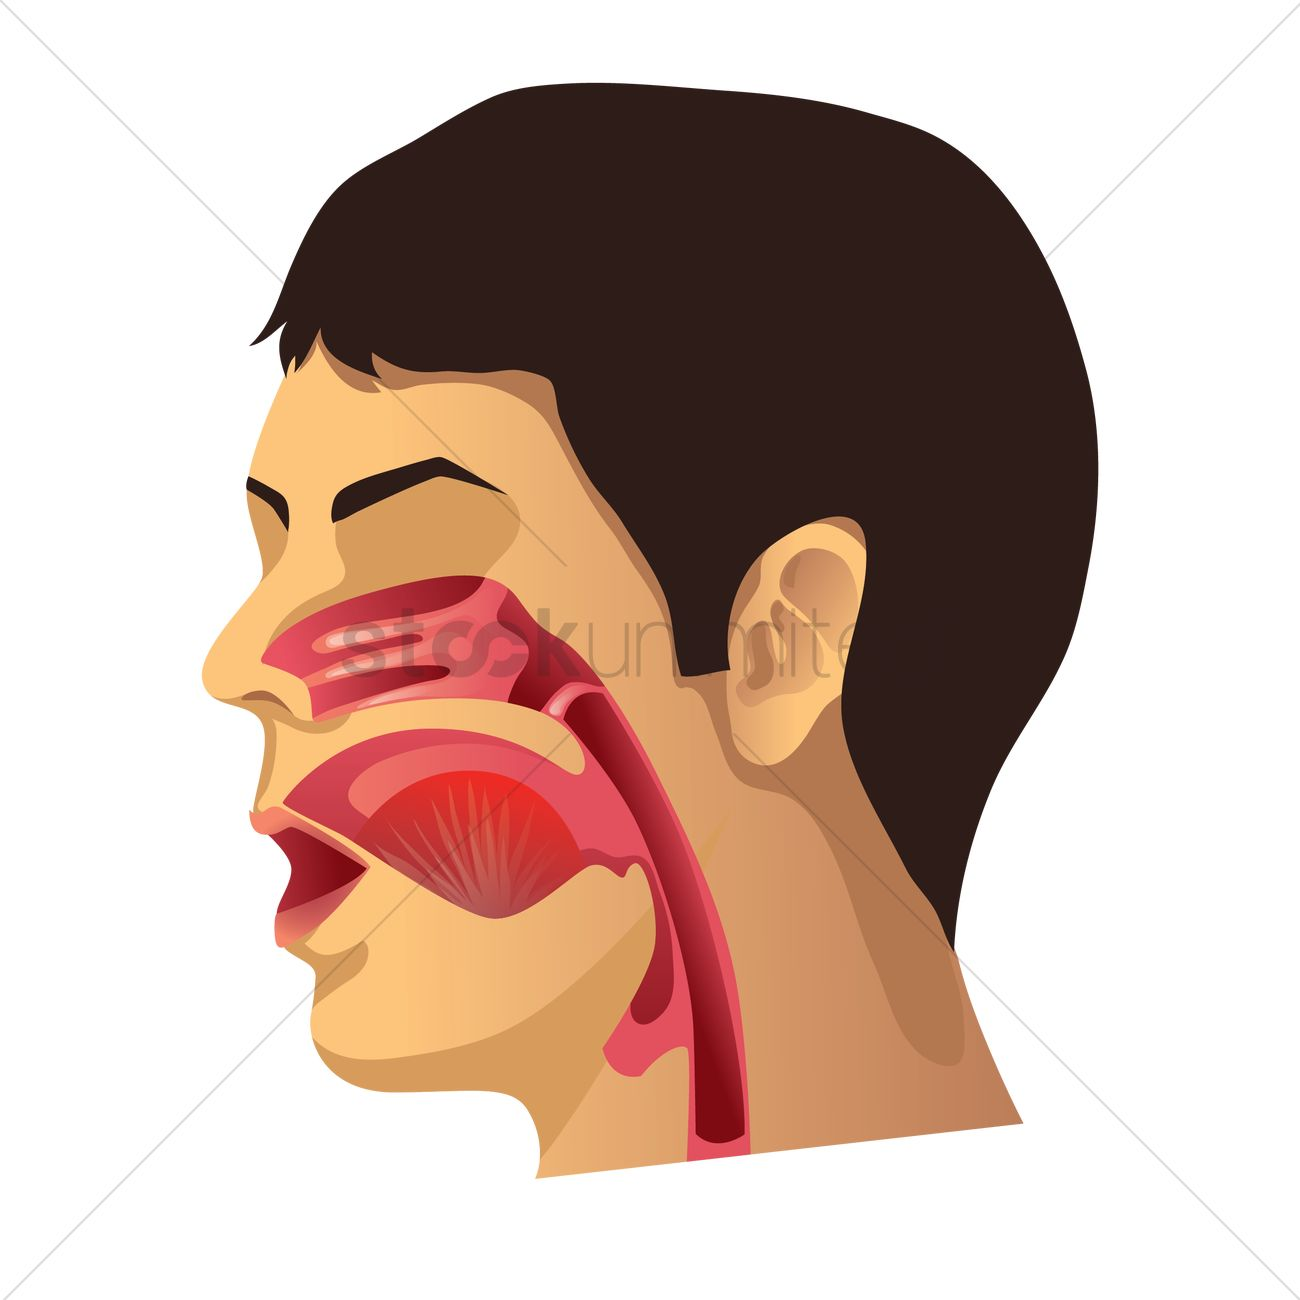 Human Throat Anatomy Vector Image 1759429 Stockunlimited